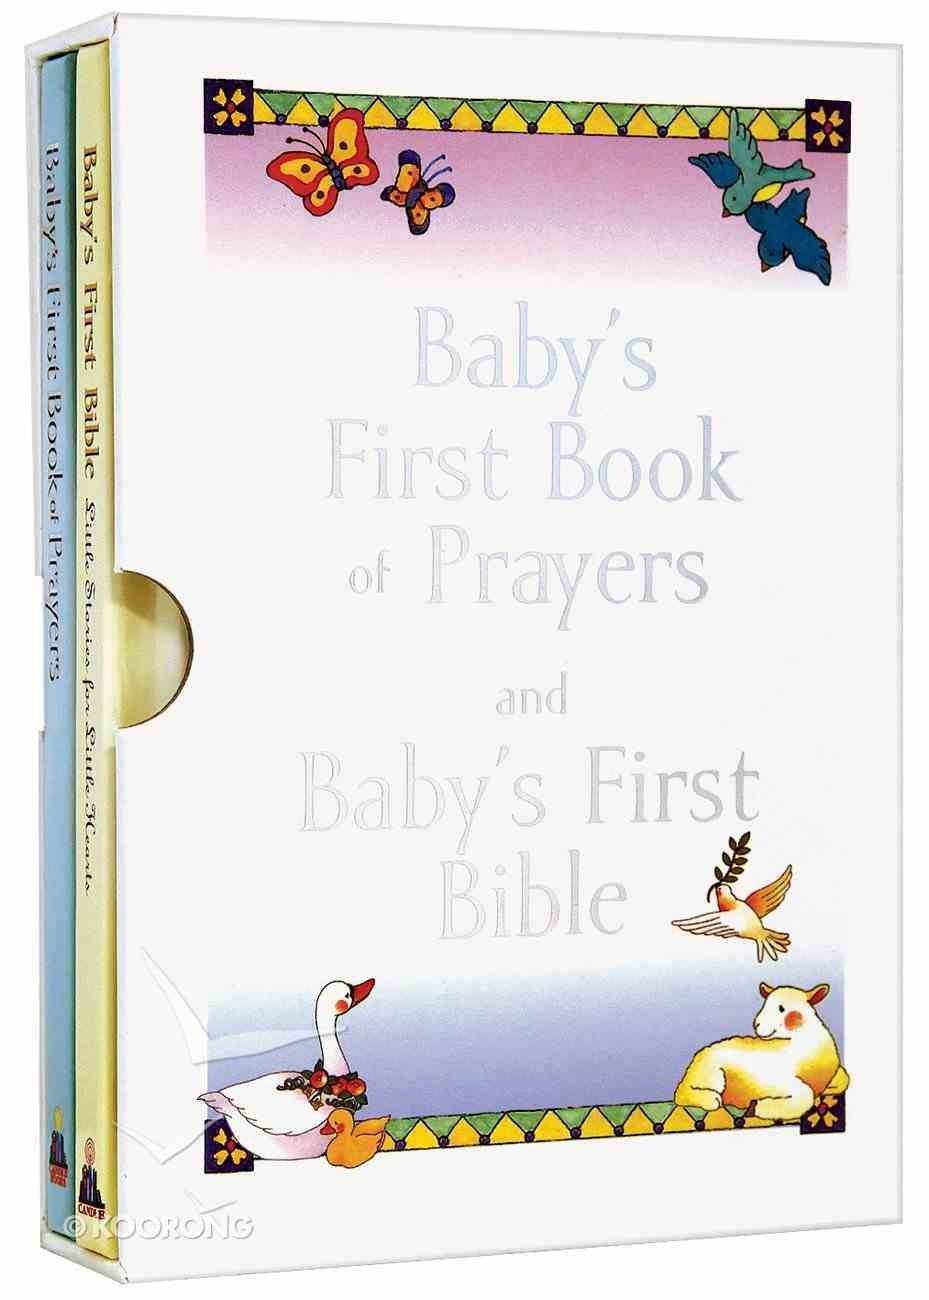 Baby's First Bible/Baby's First Book of Prayers Gift Set Pack